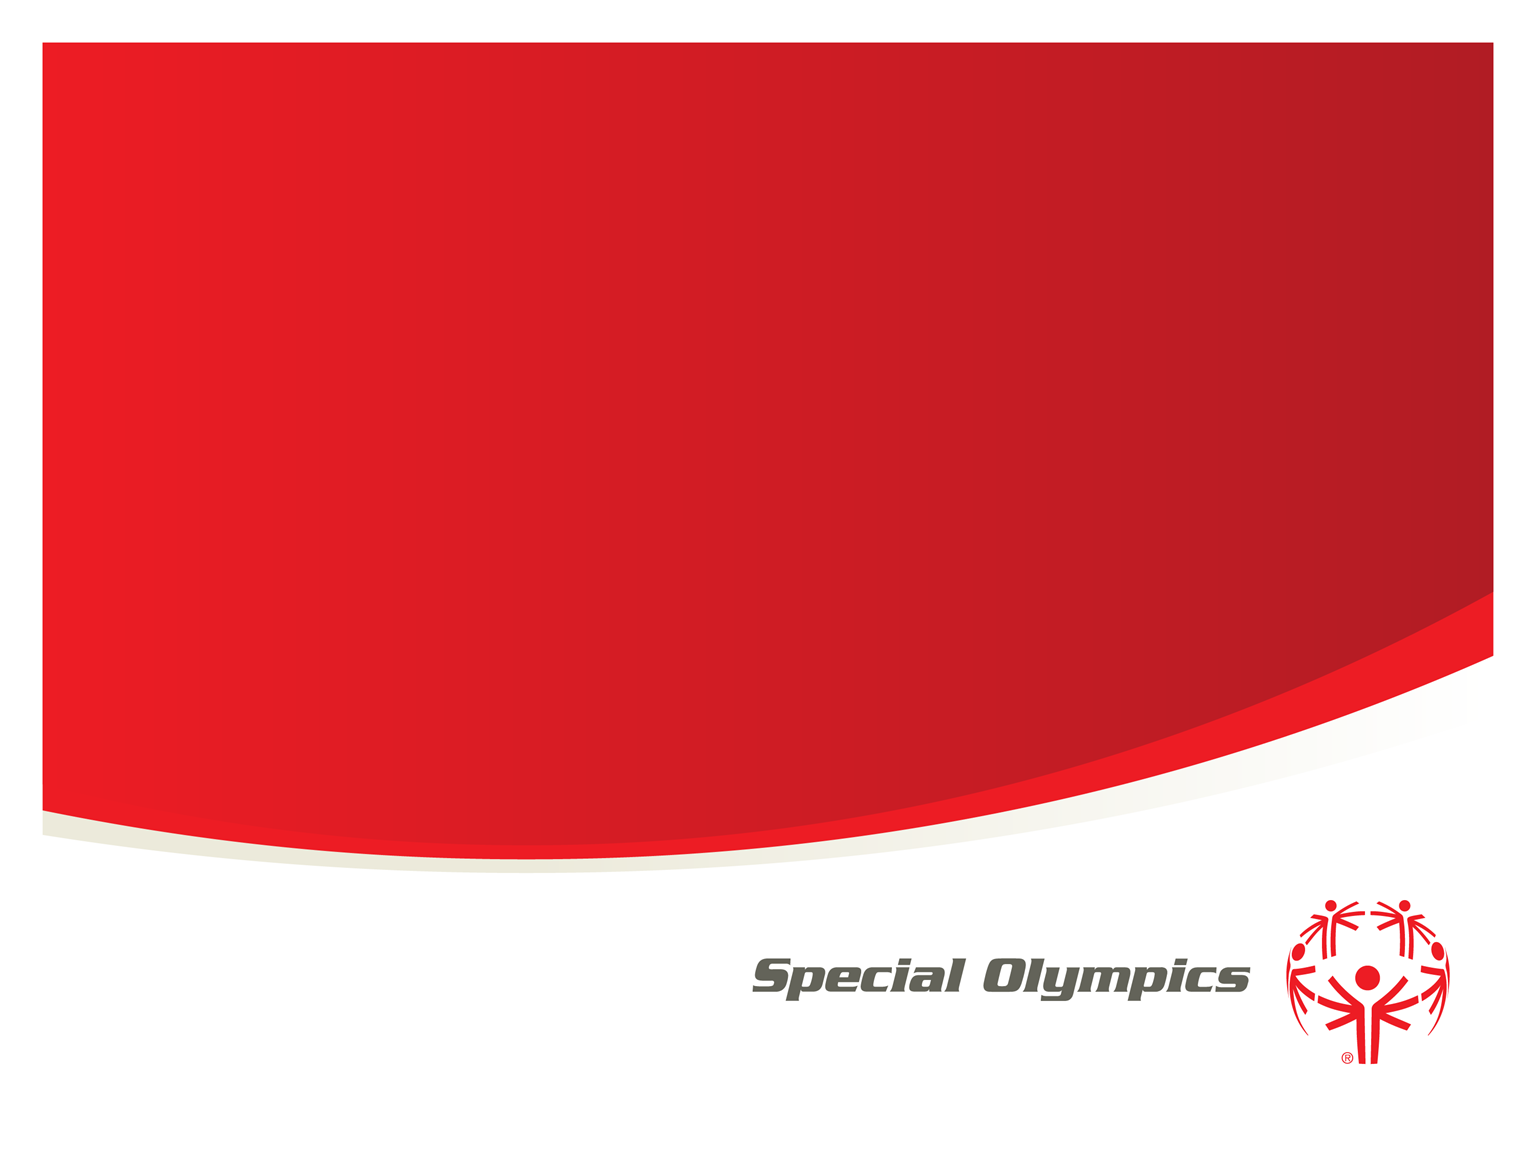 Special Olympics Global Football Initiative Update